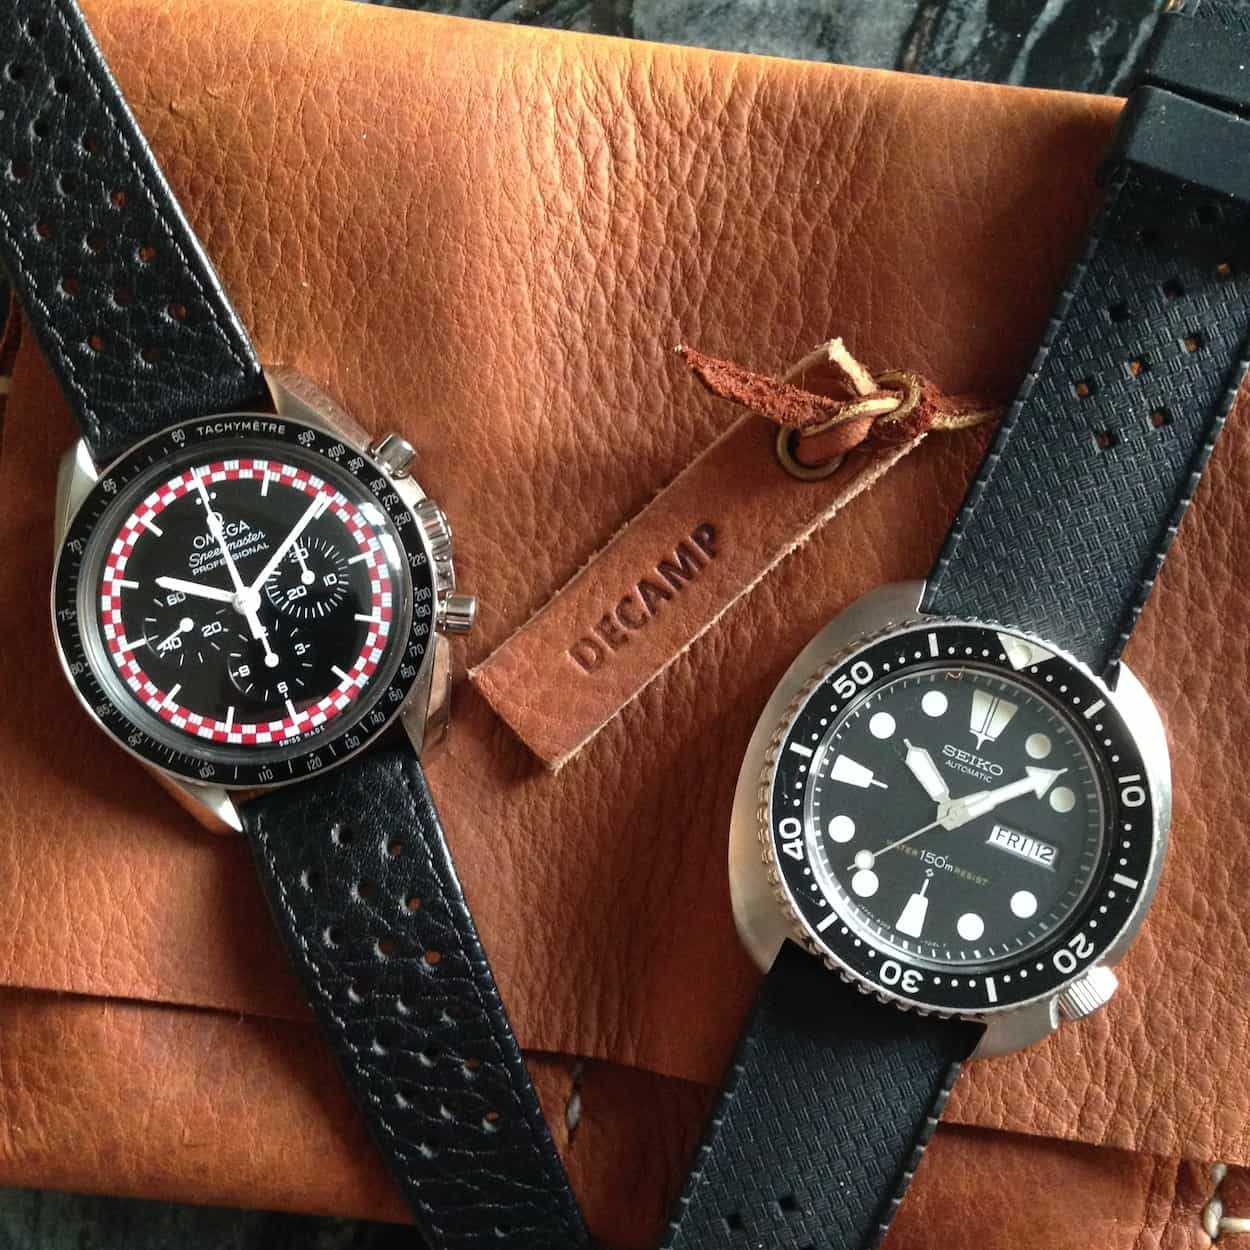 Decamp watch rolls are simply fantastic